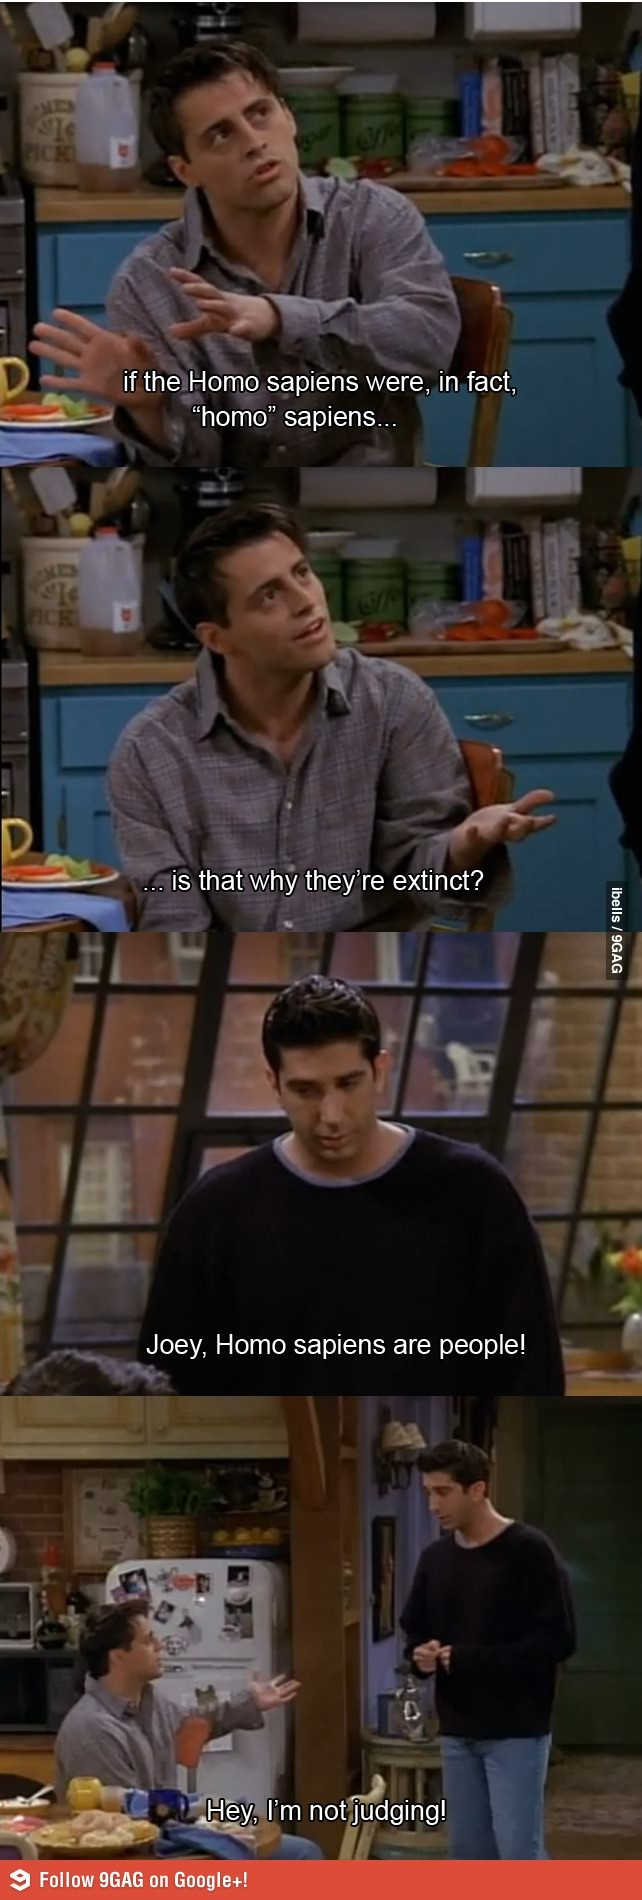 Oh, Joey!